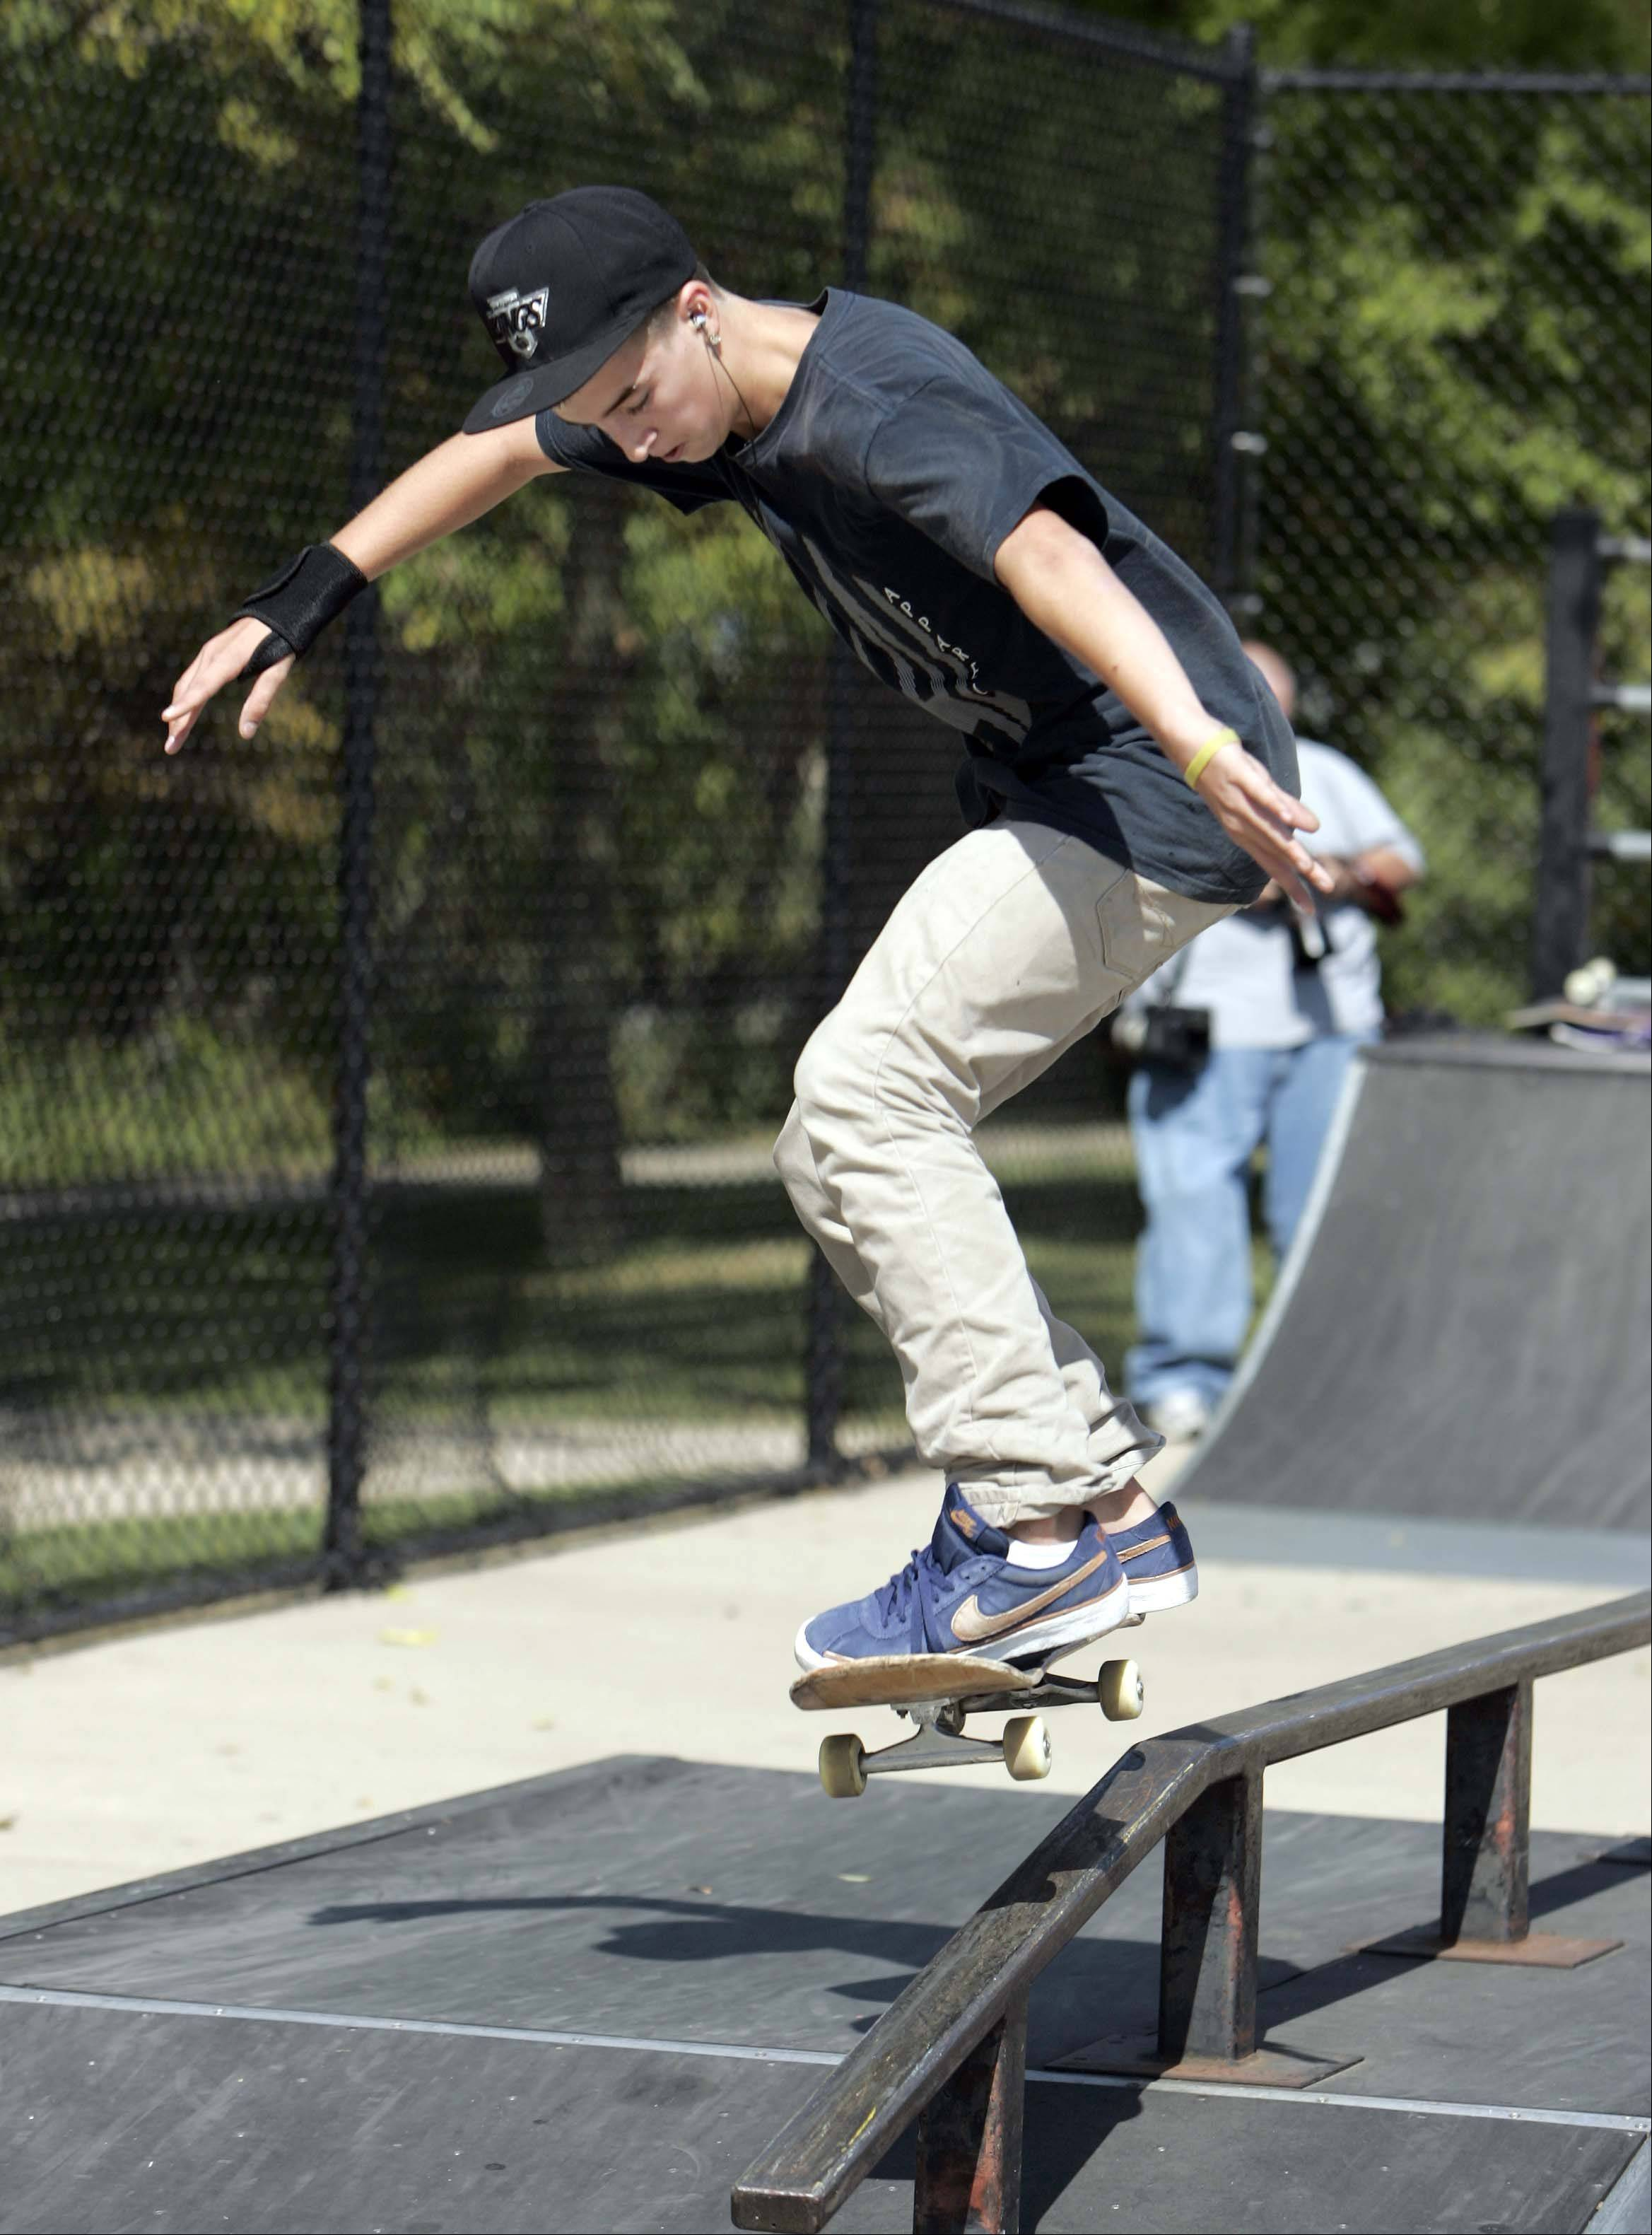 Danny Beauchamp, 15, of North Aurora ollies up to a 5-50 grind during the Batavia Teen Center�s third-annual skateboard competition Saturday at Blackard Skate-n-Bike Park in Batavia.